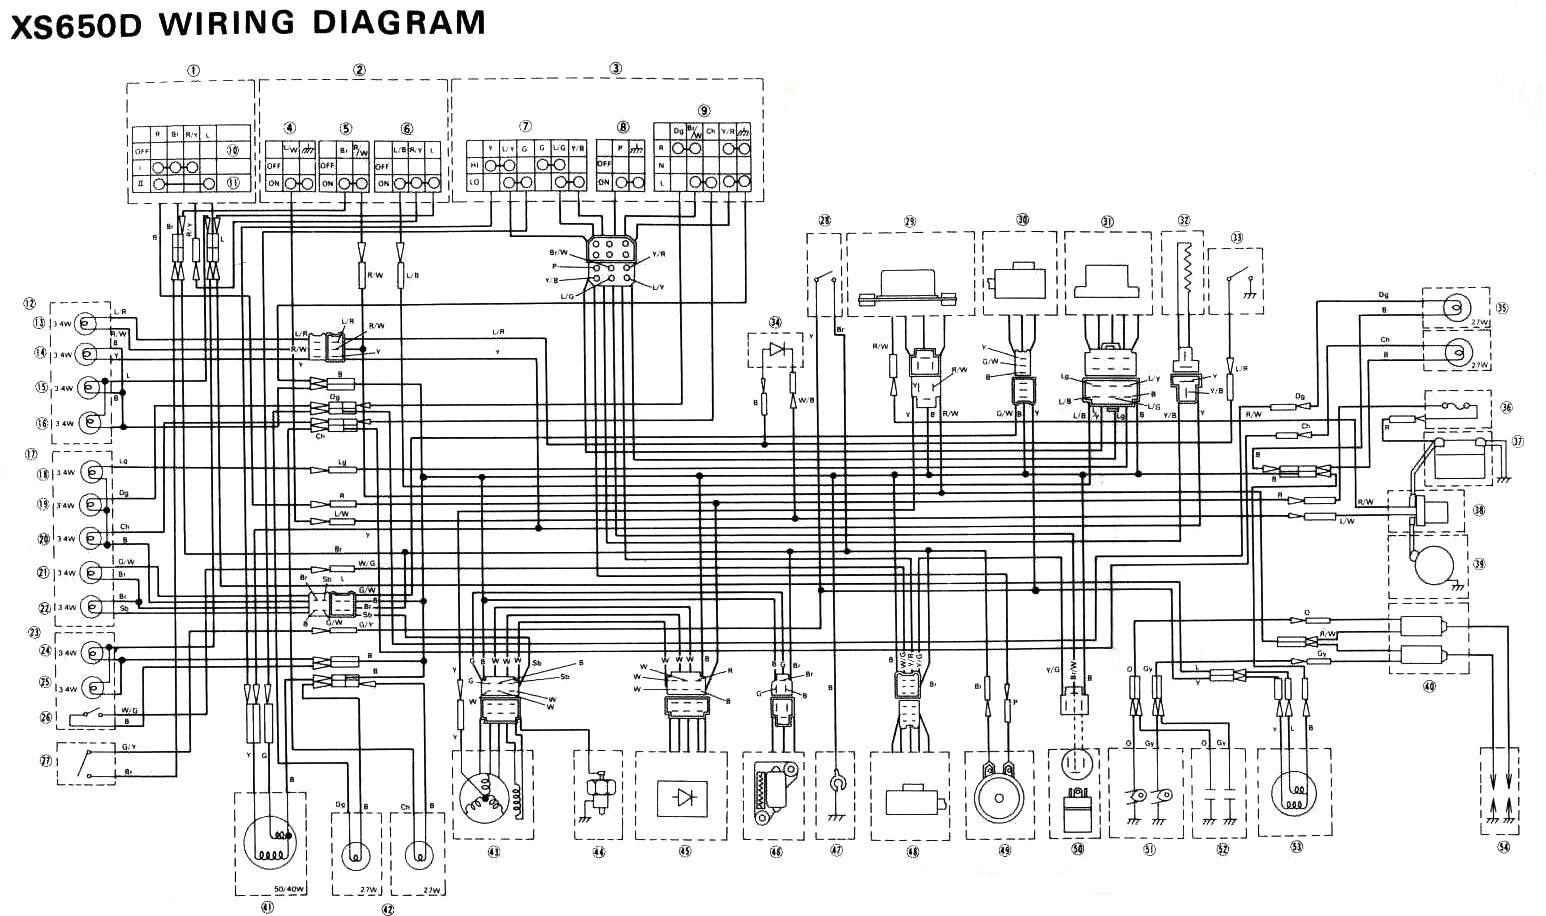 Wiring Diagrams Pictures Get Free Image About Diagram 1977 Xs650d